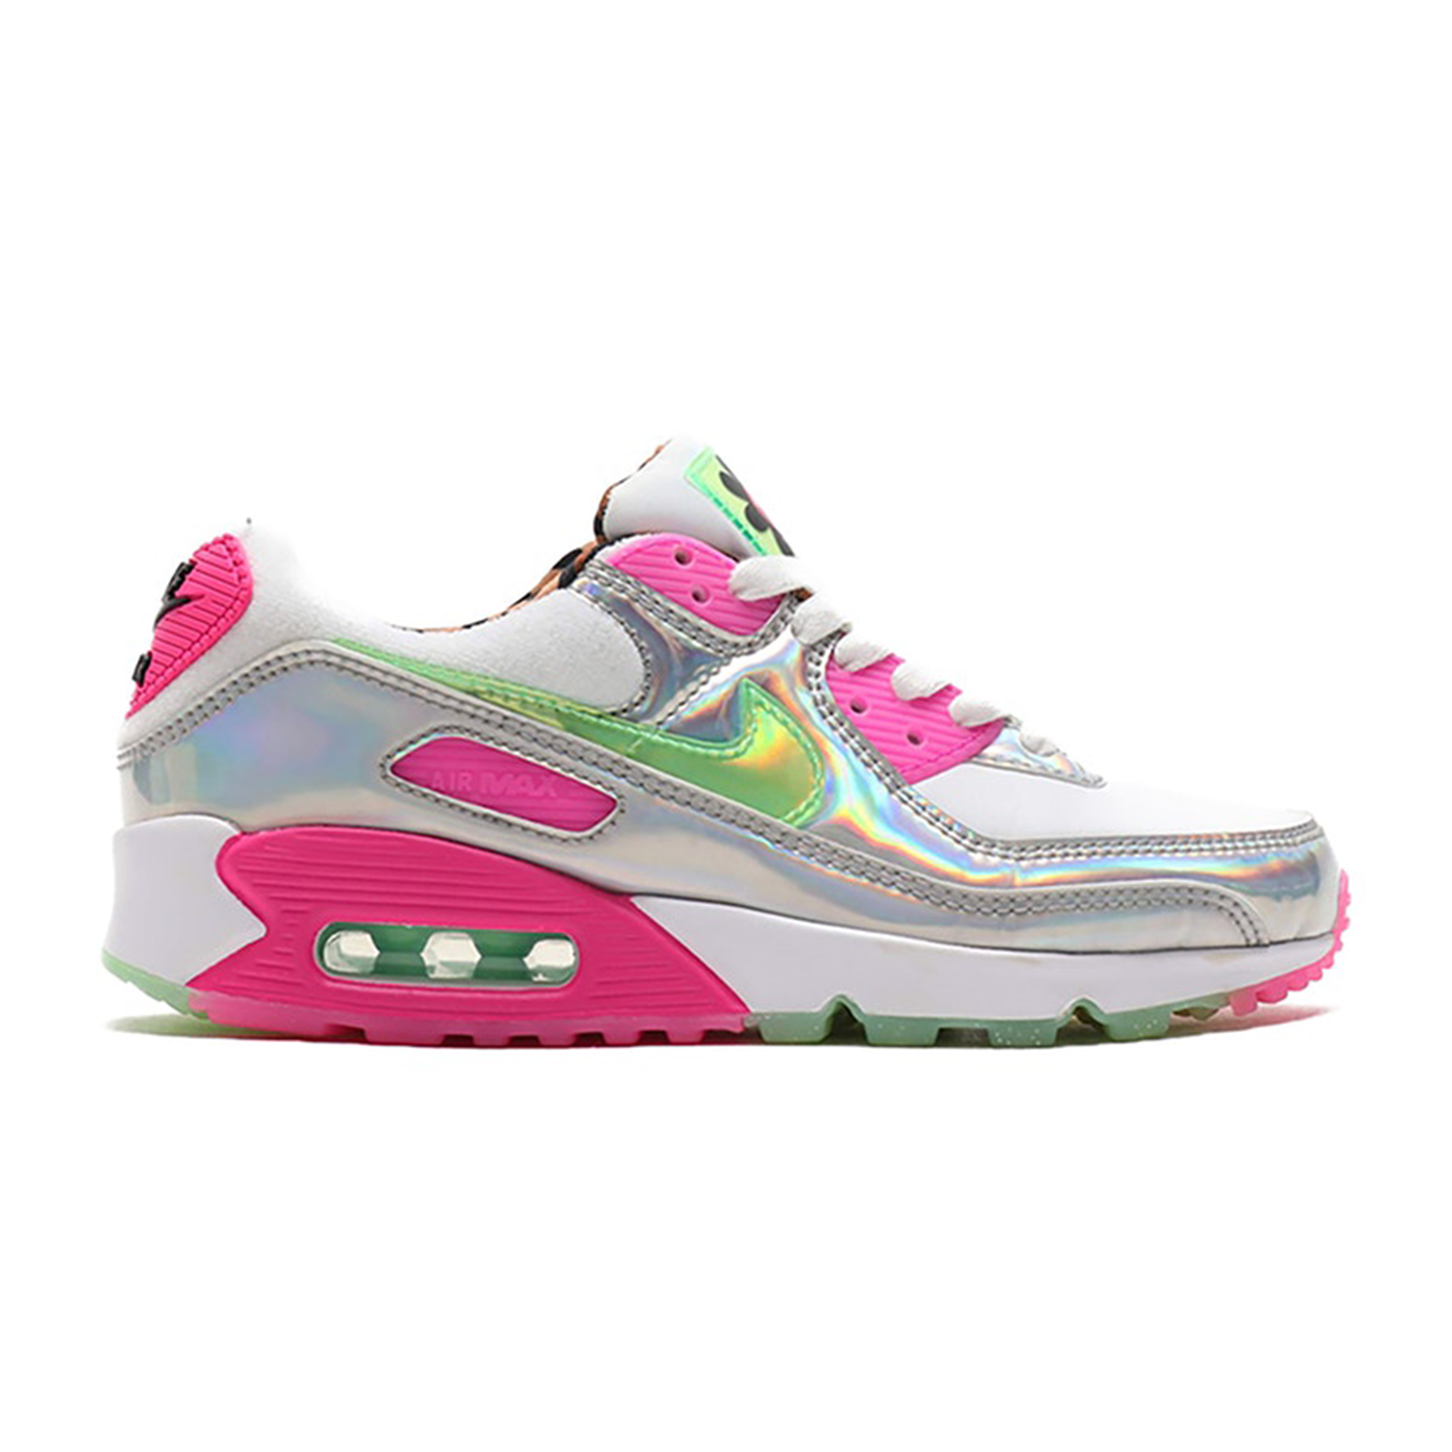 Nike-Air-Max-90-LX-90s-Dancefloor-White-W